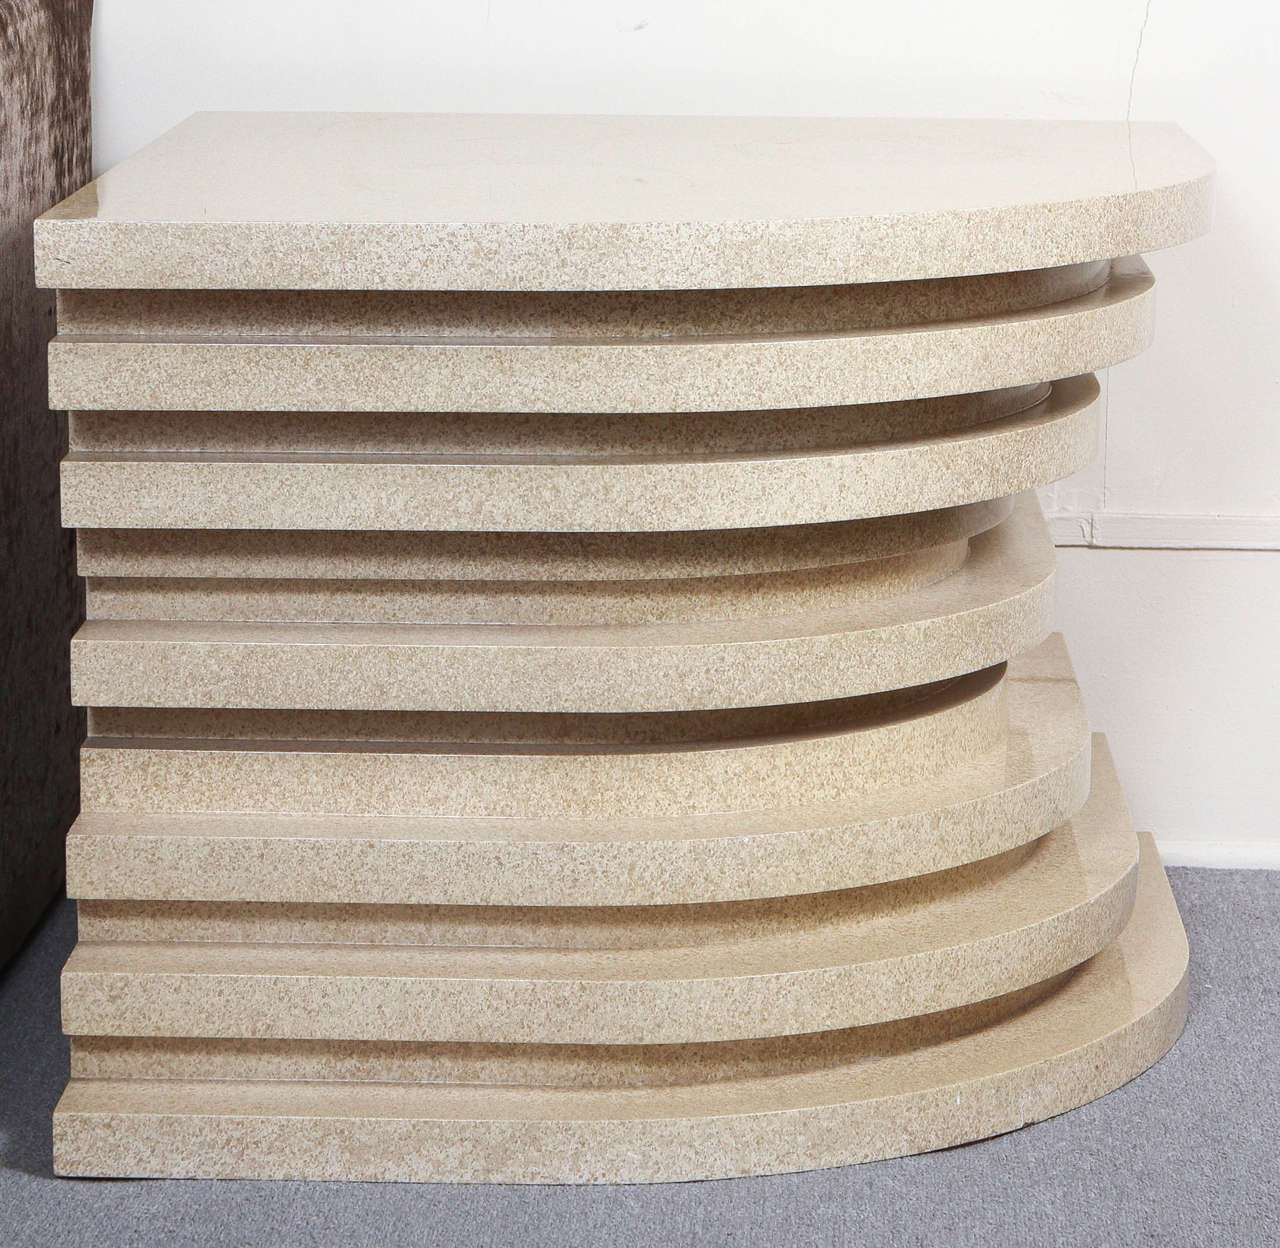 Quarter round corner table by Steve Chase.  The table was designed to resemble a stack of different sized elements. It has a warm faux stone finish.